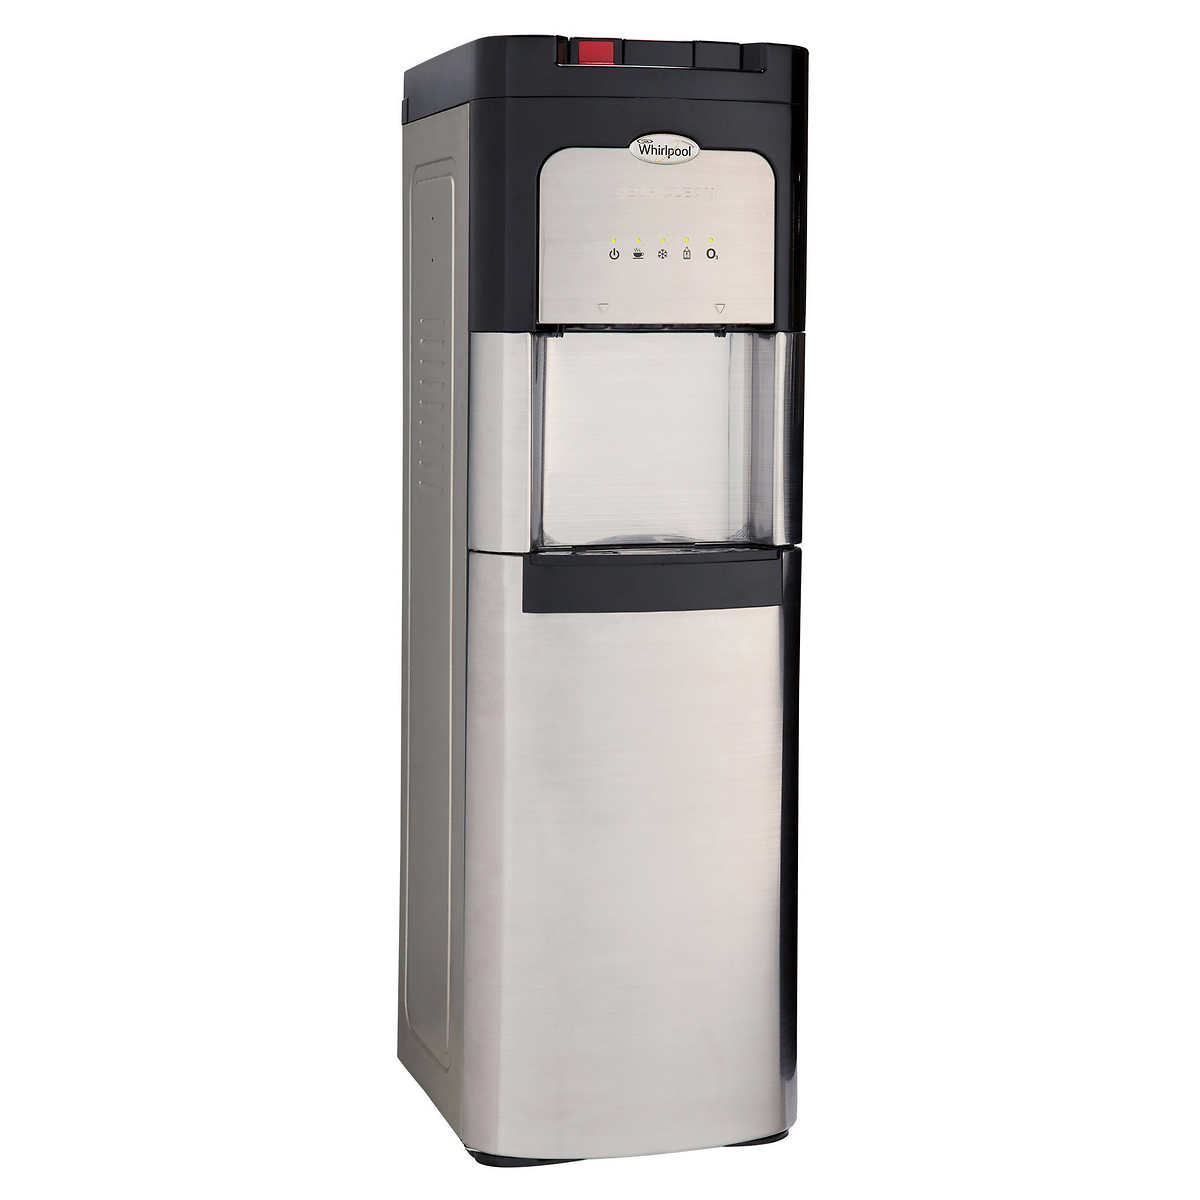 Whirlpool white ice costco canada - Whirlpool Self Cleaning Stainless Steel Bottom Load Water Cooler With Led Indicators